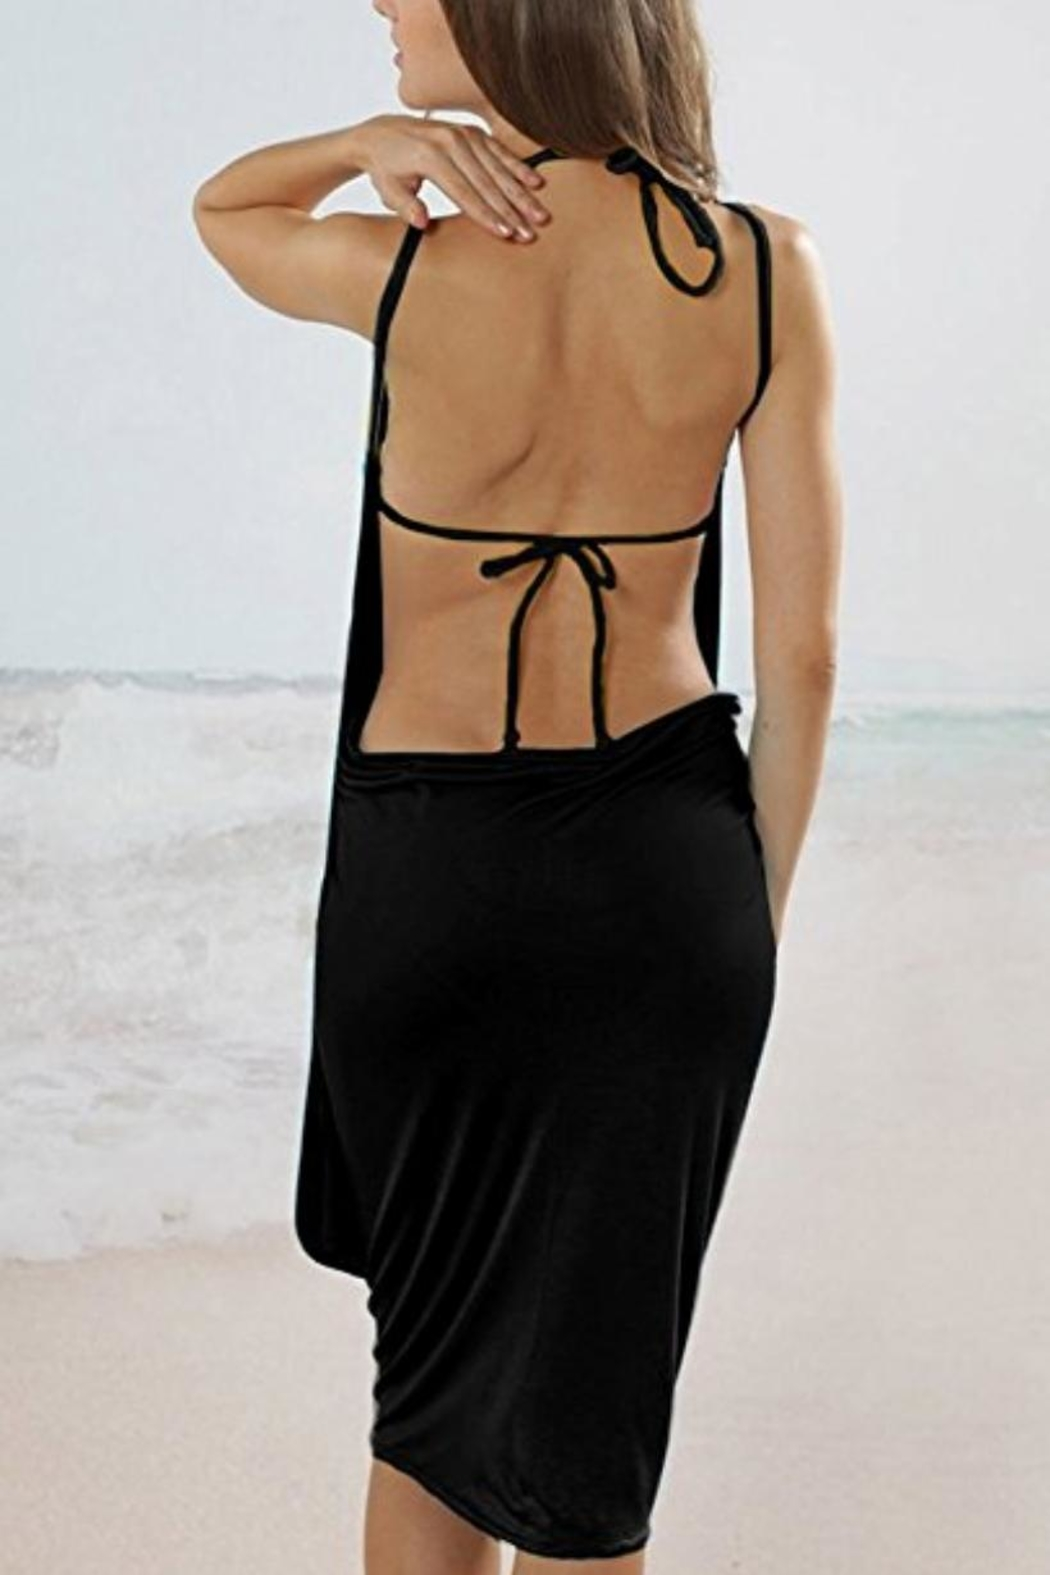 Julia Spaghetti-Strap Backless Beach-Dress - Front Cropped Image